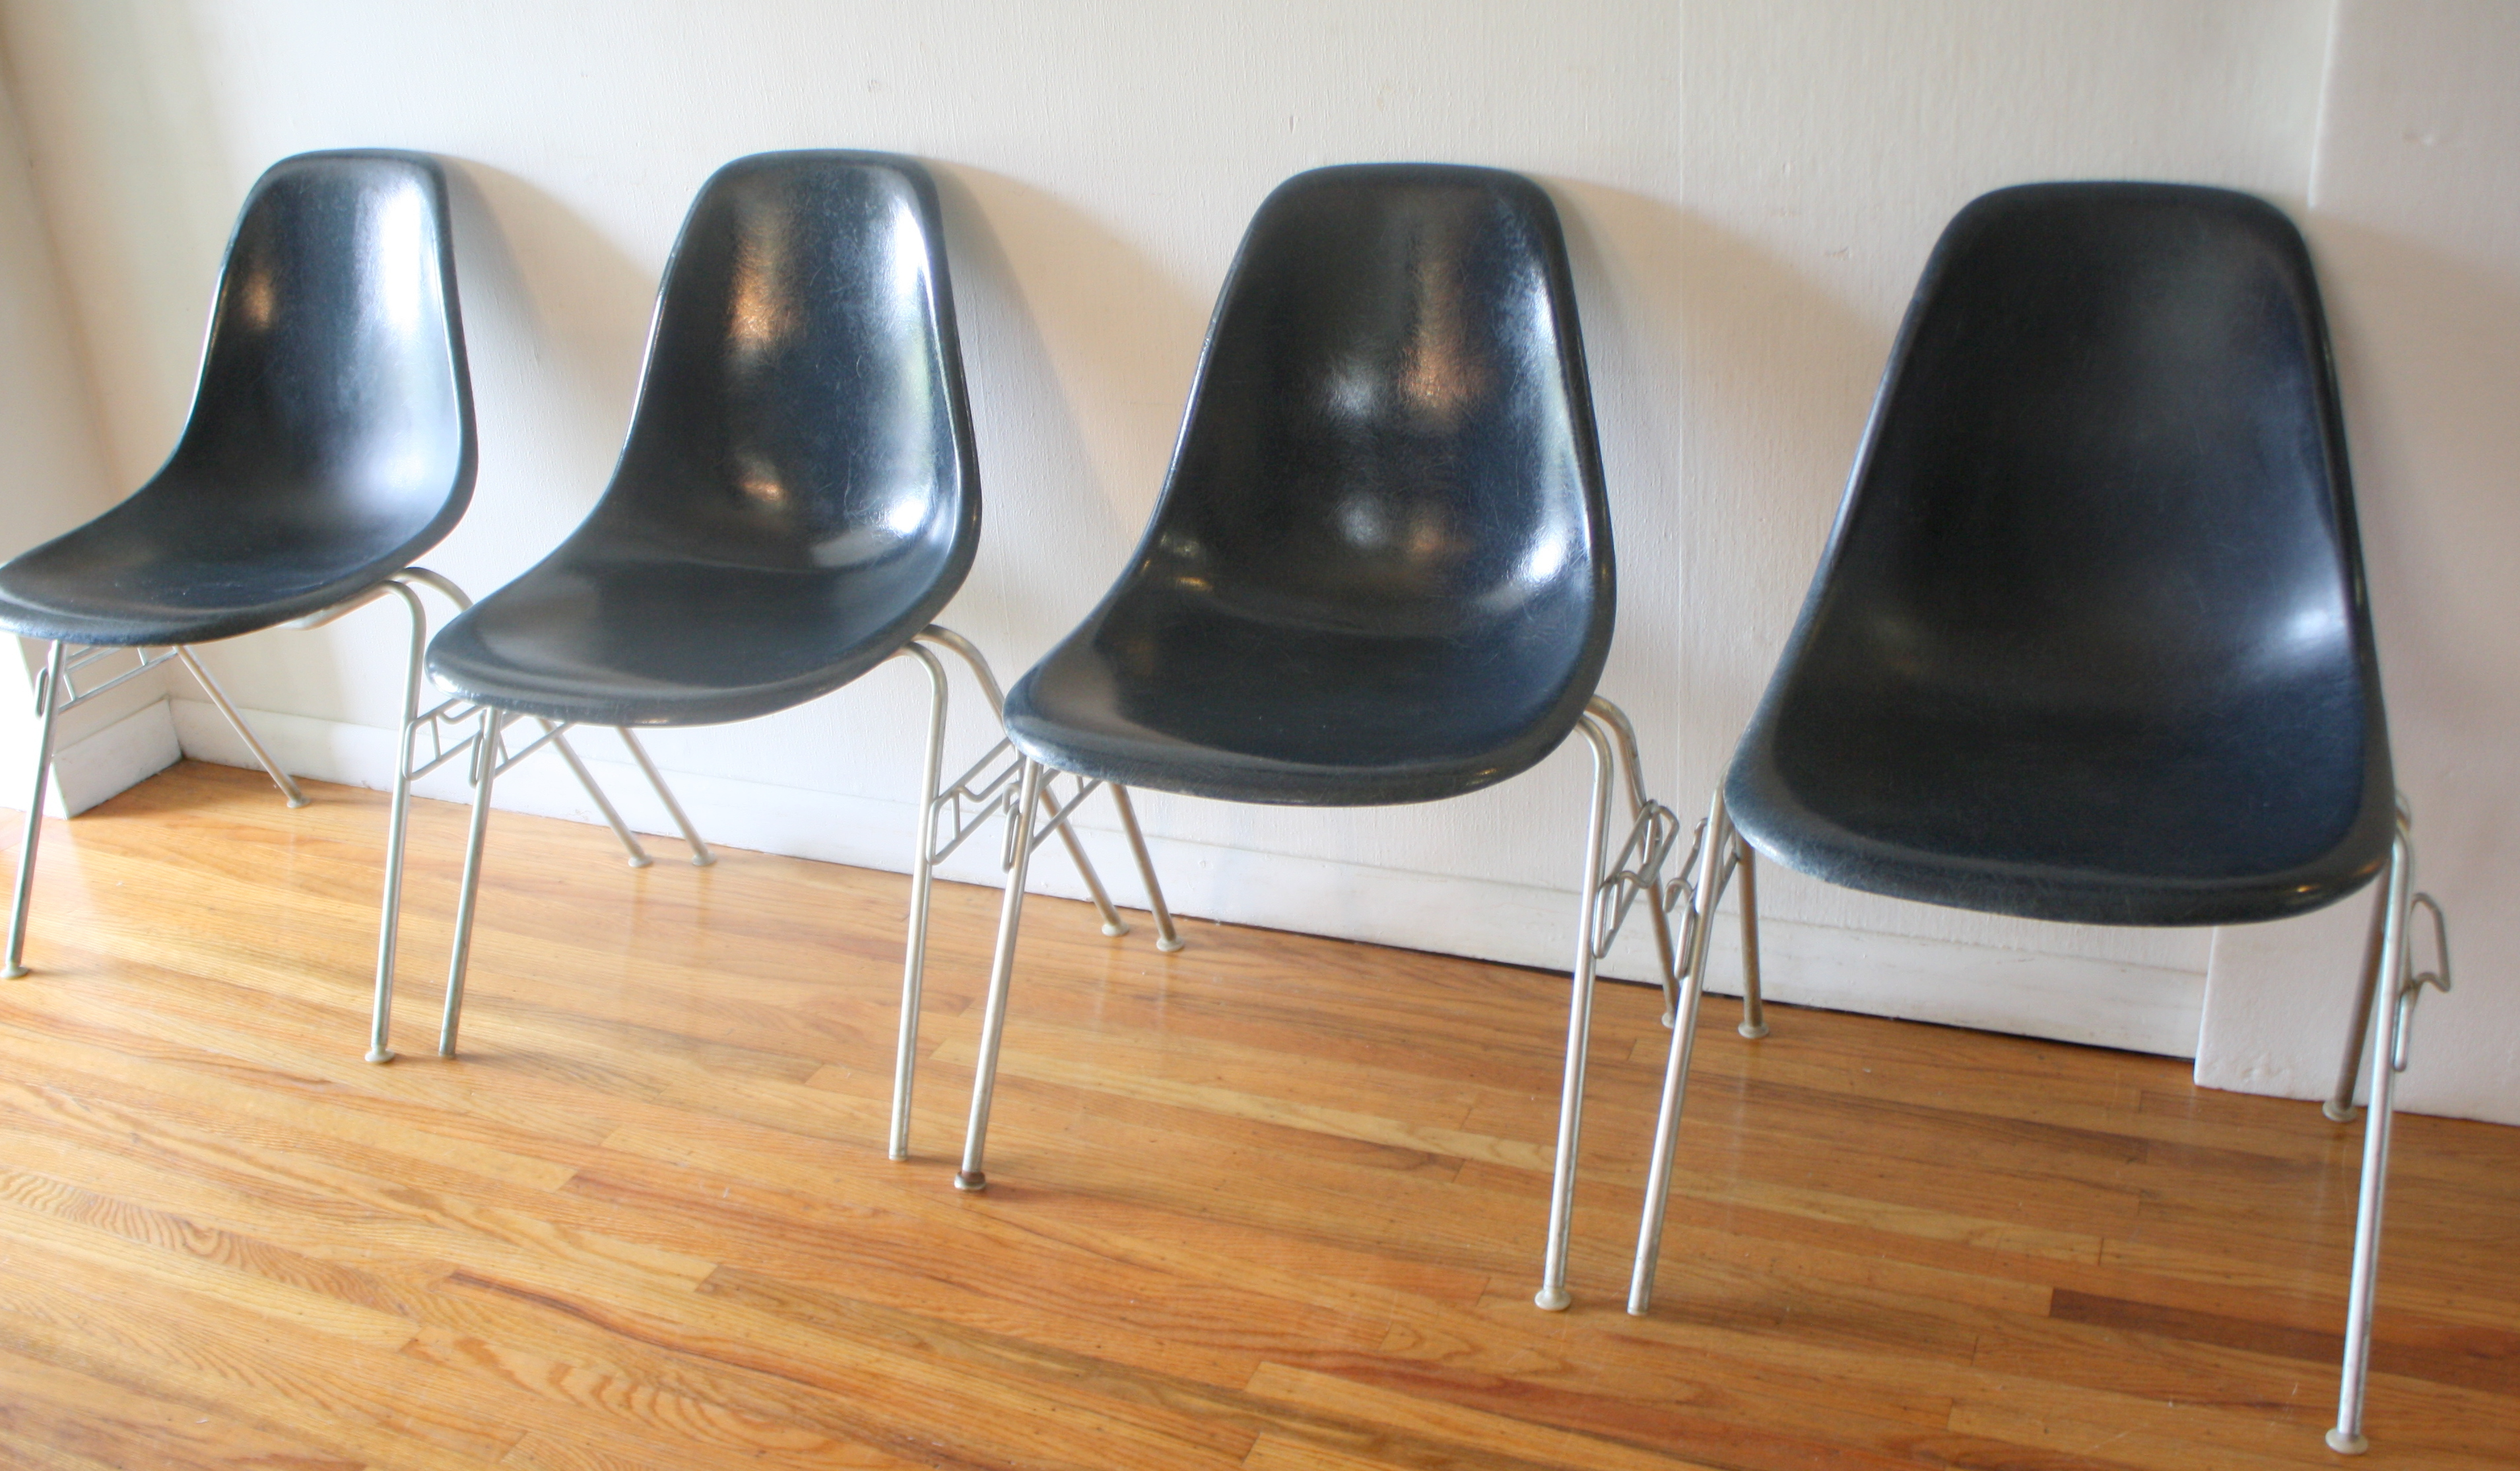 Charmant Mid Century Modern Fiberglass Chairs By Herman Miller